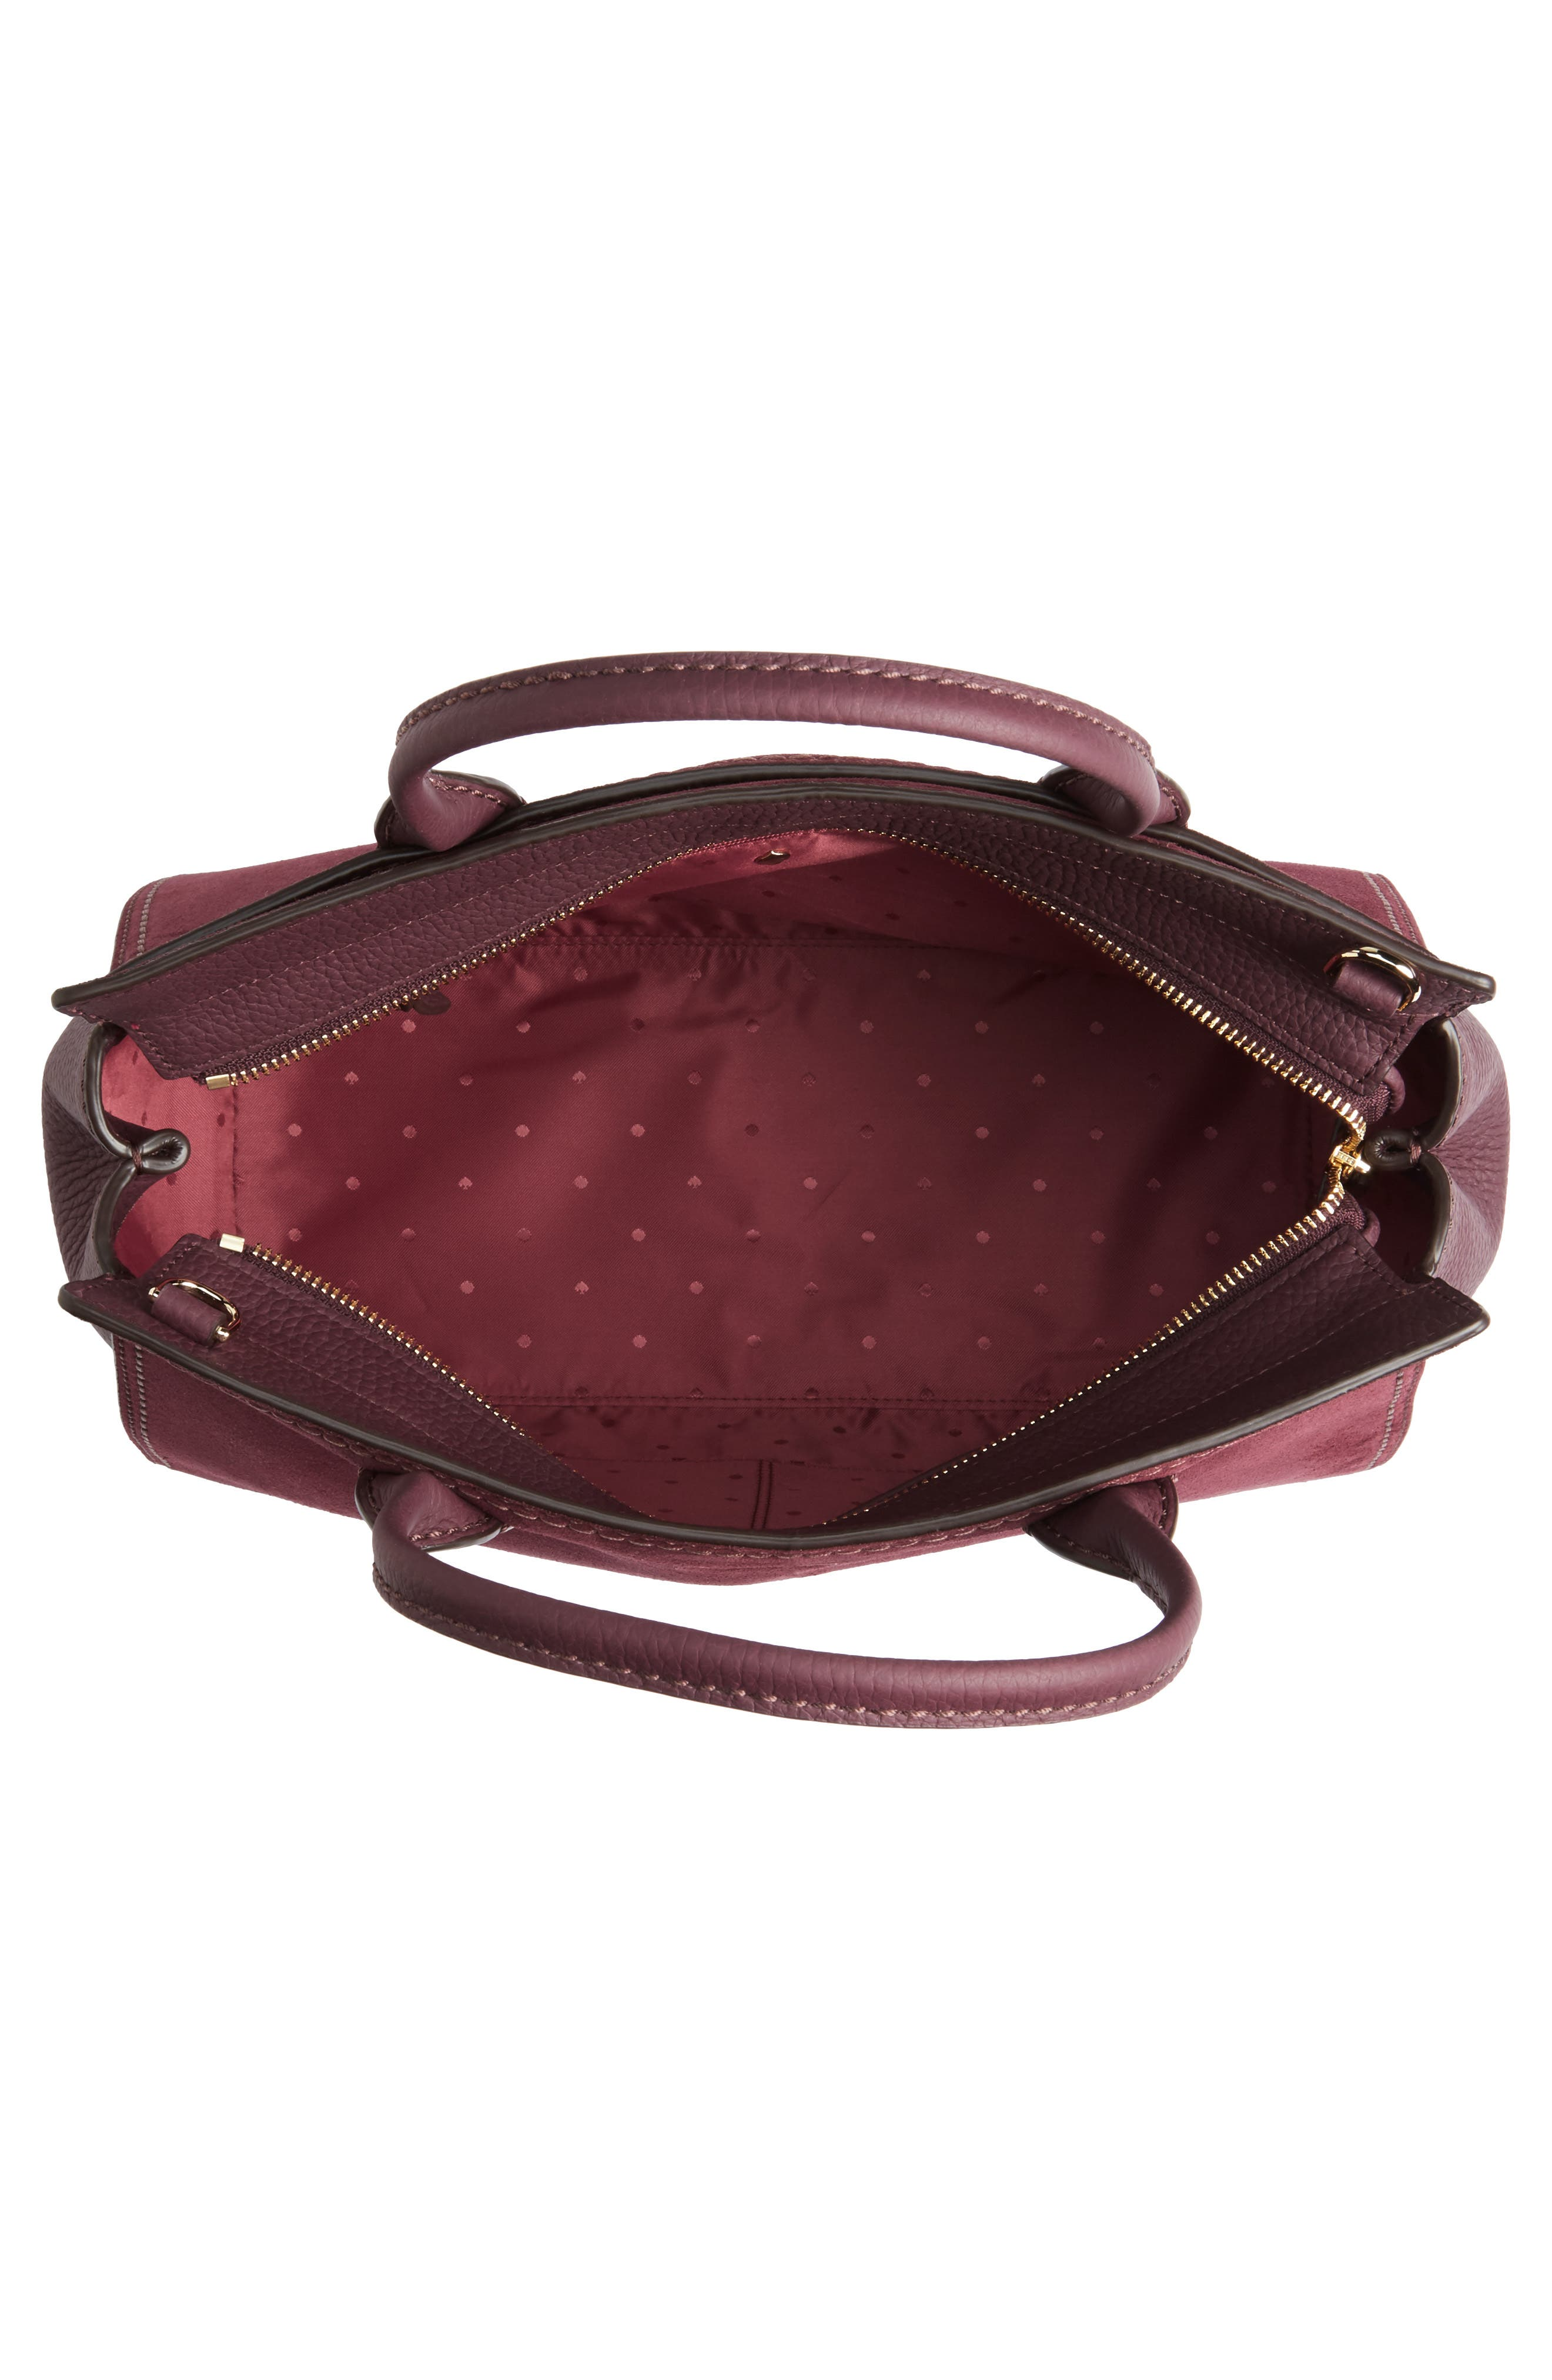 dunne lane lake suede satchel,                             Alternate thumbnail 4, color,                             Deep Wine